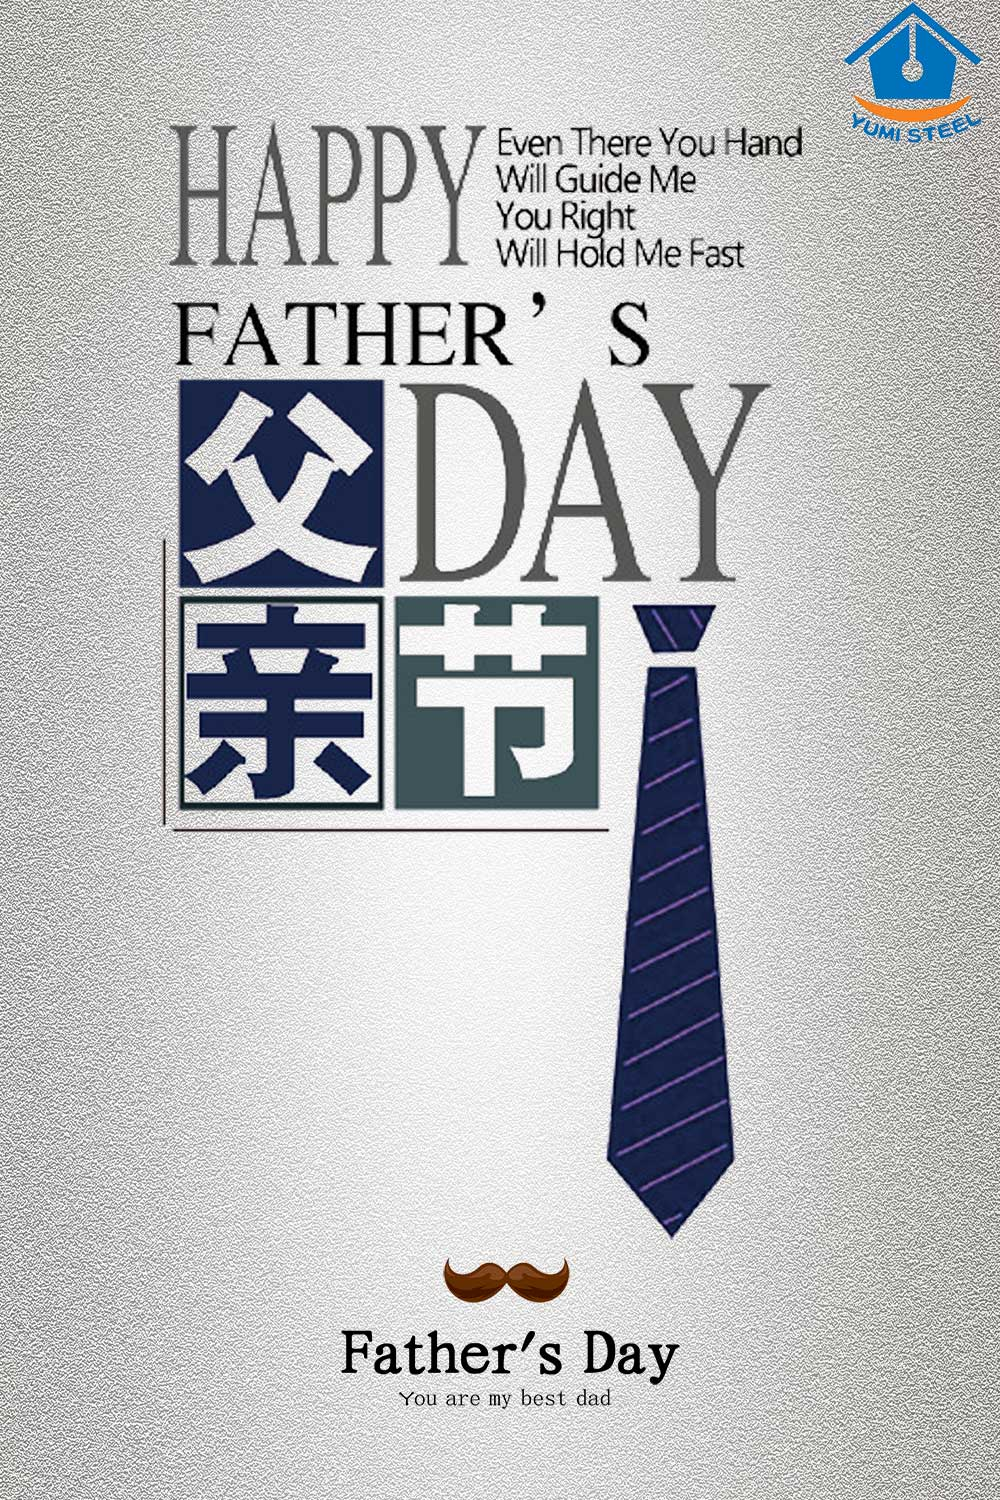 HAPPY-FATHER'S-DAY!